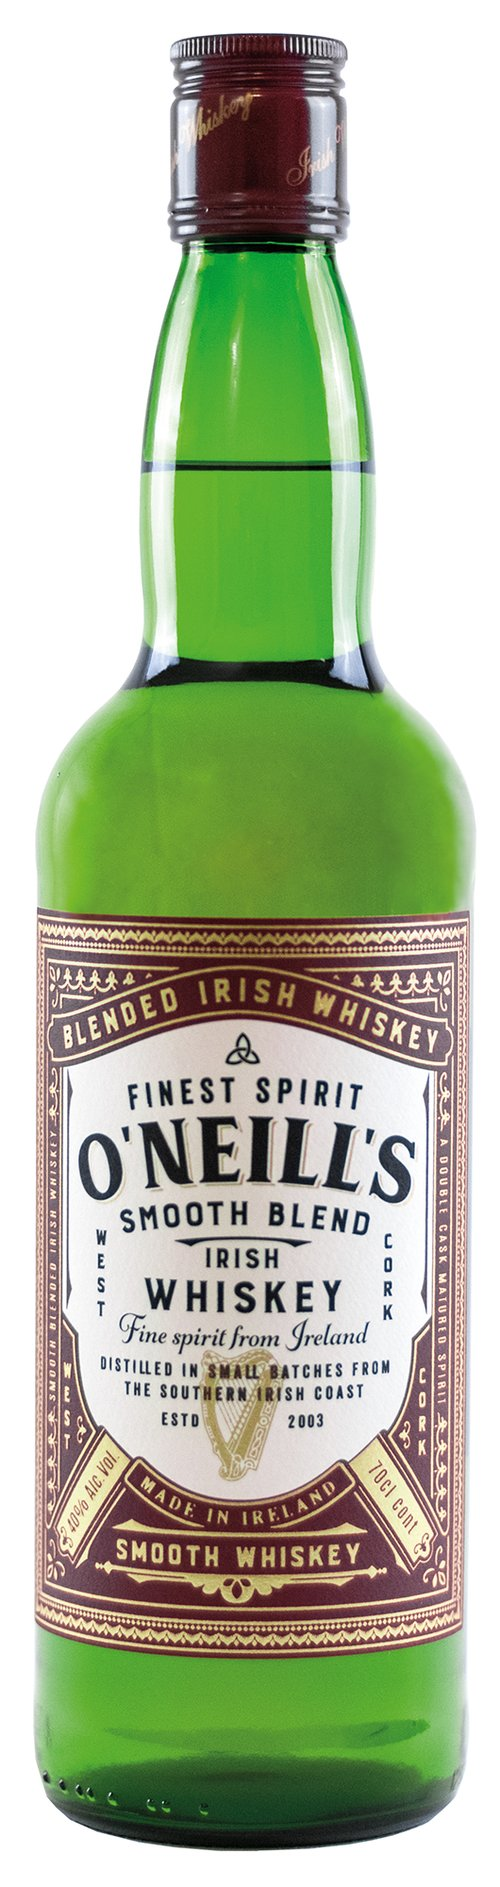 West Cork Distillers Limited O NEILLS BLENDED 40% Irish Whiskey, 0,7 l